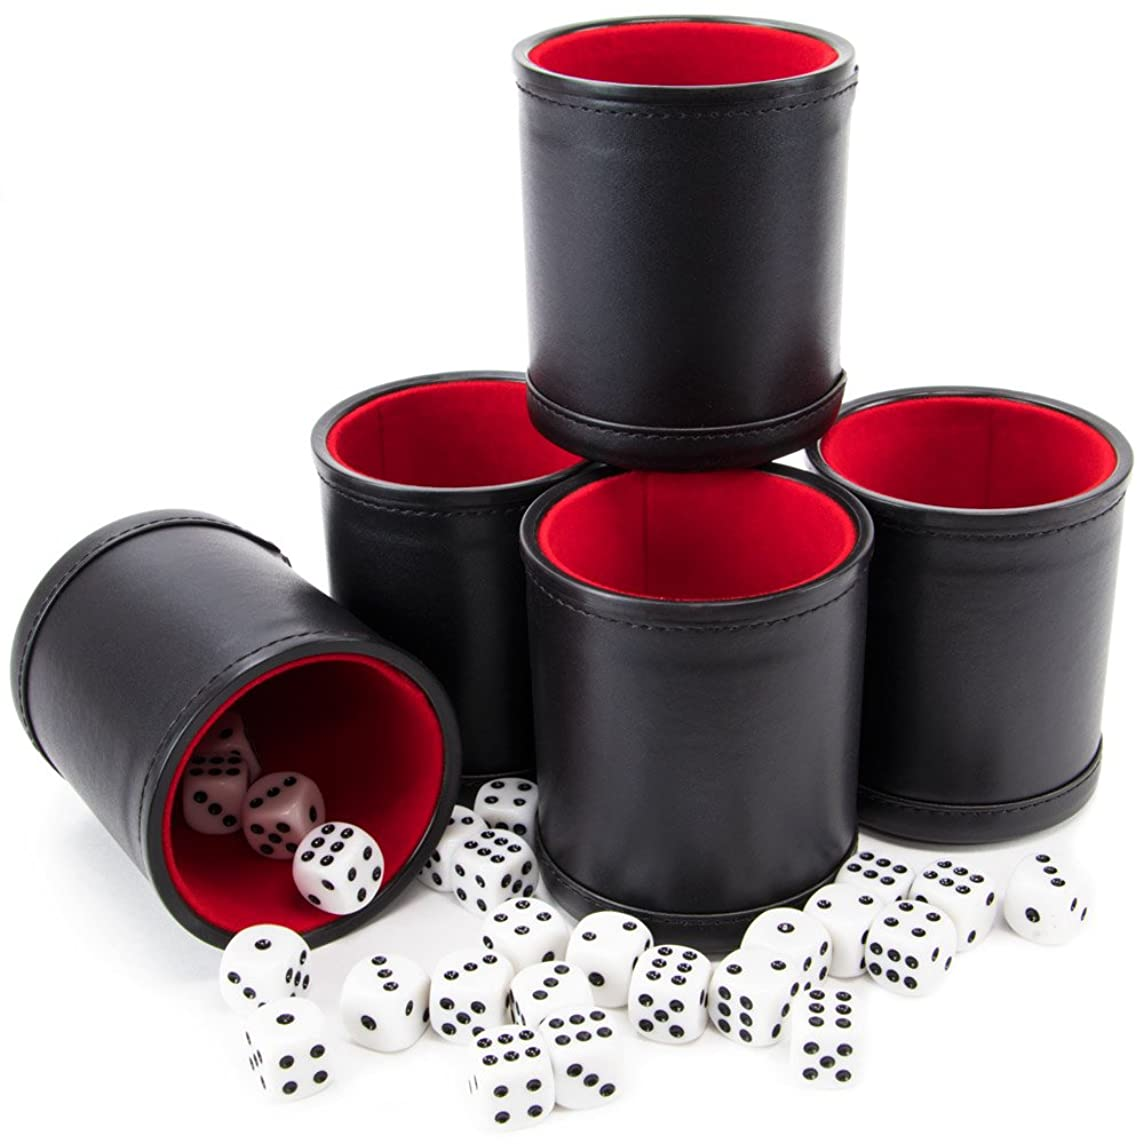 Brybelly Bundle of 5 Professional Dice Cups – Red Felt-Lined, Quality Bicast Leather, Includes 25 White Six-Sided Dice